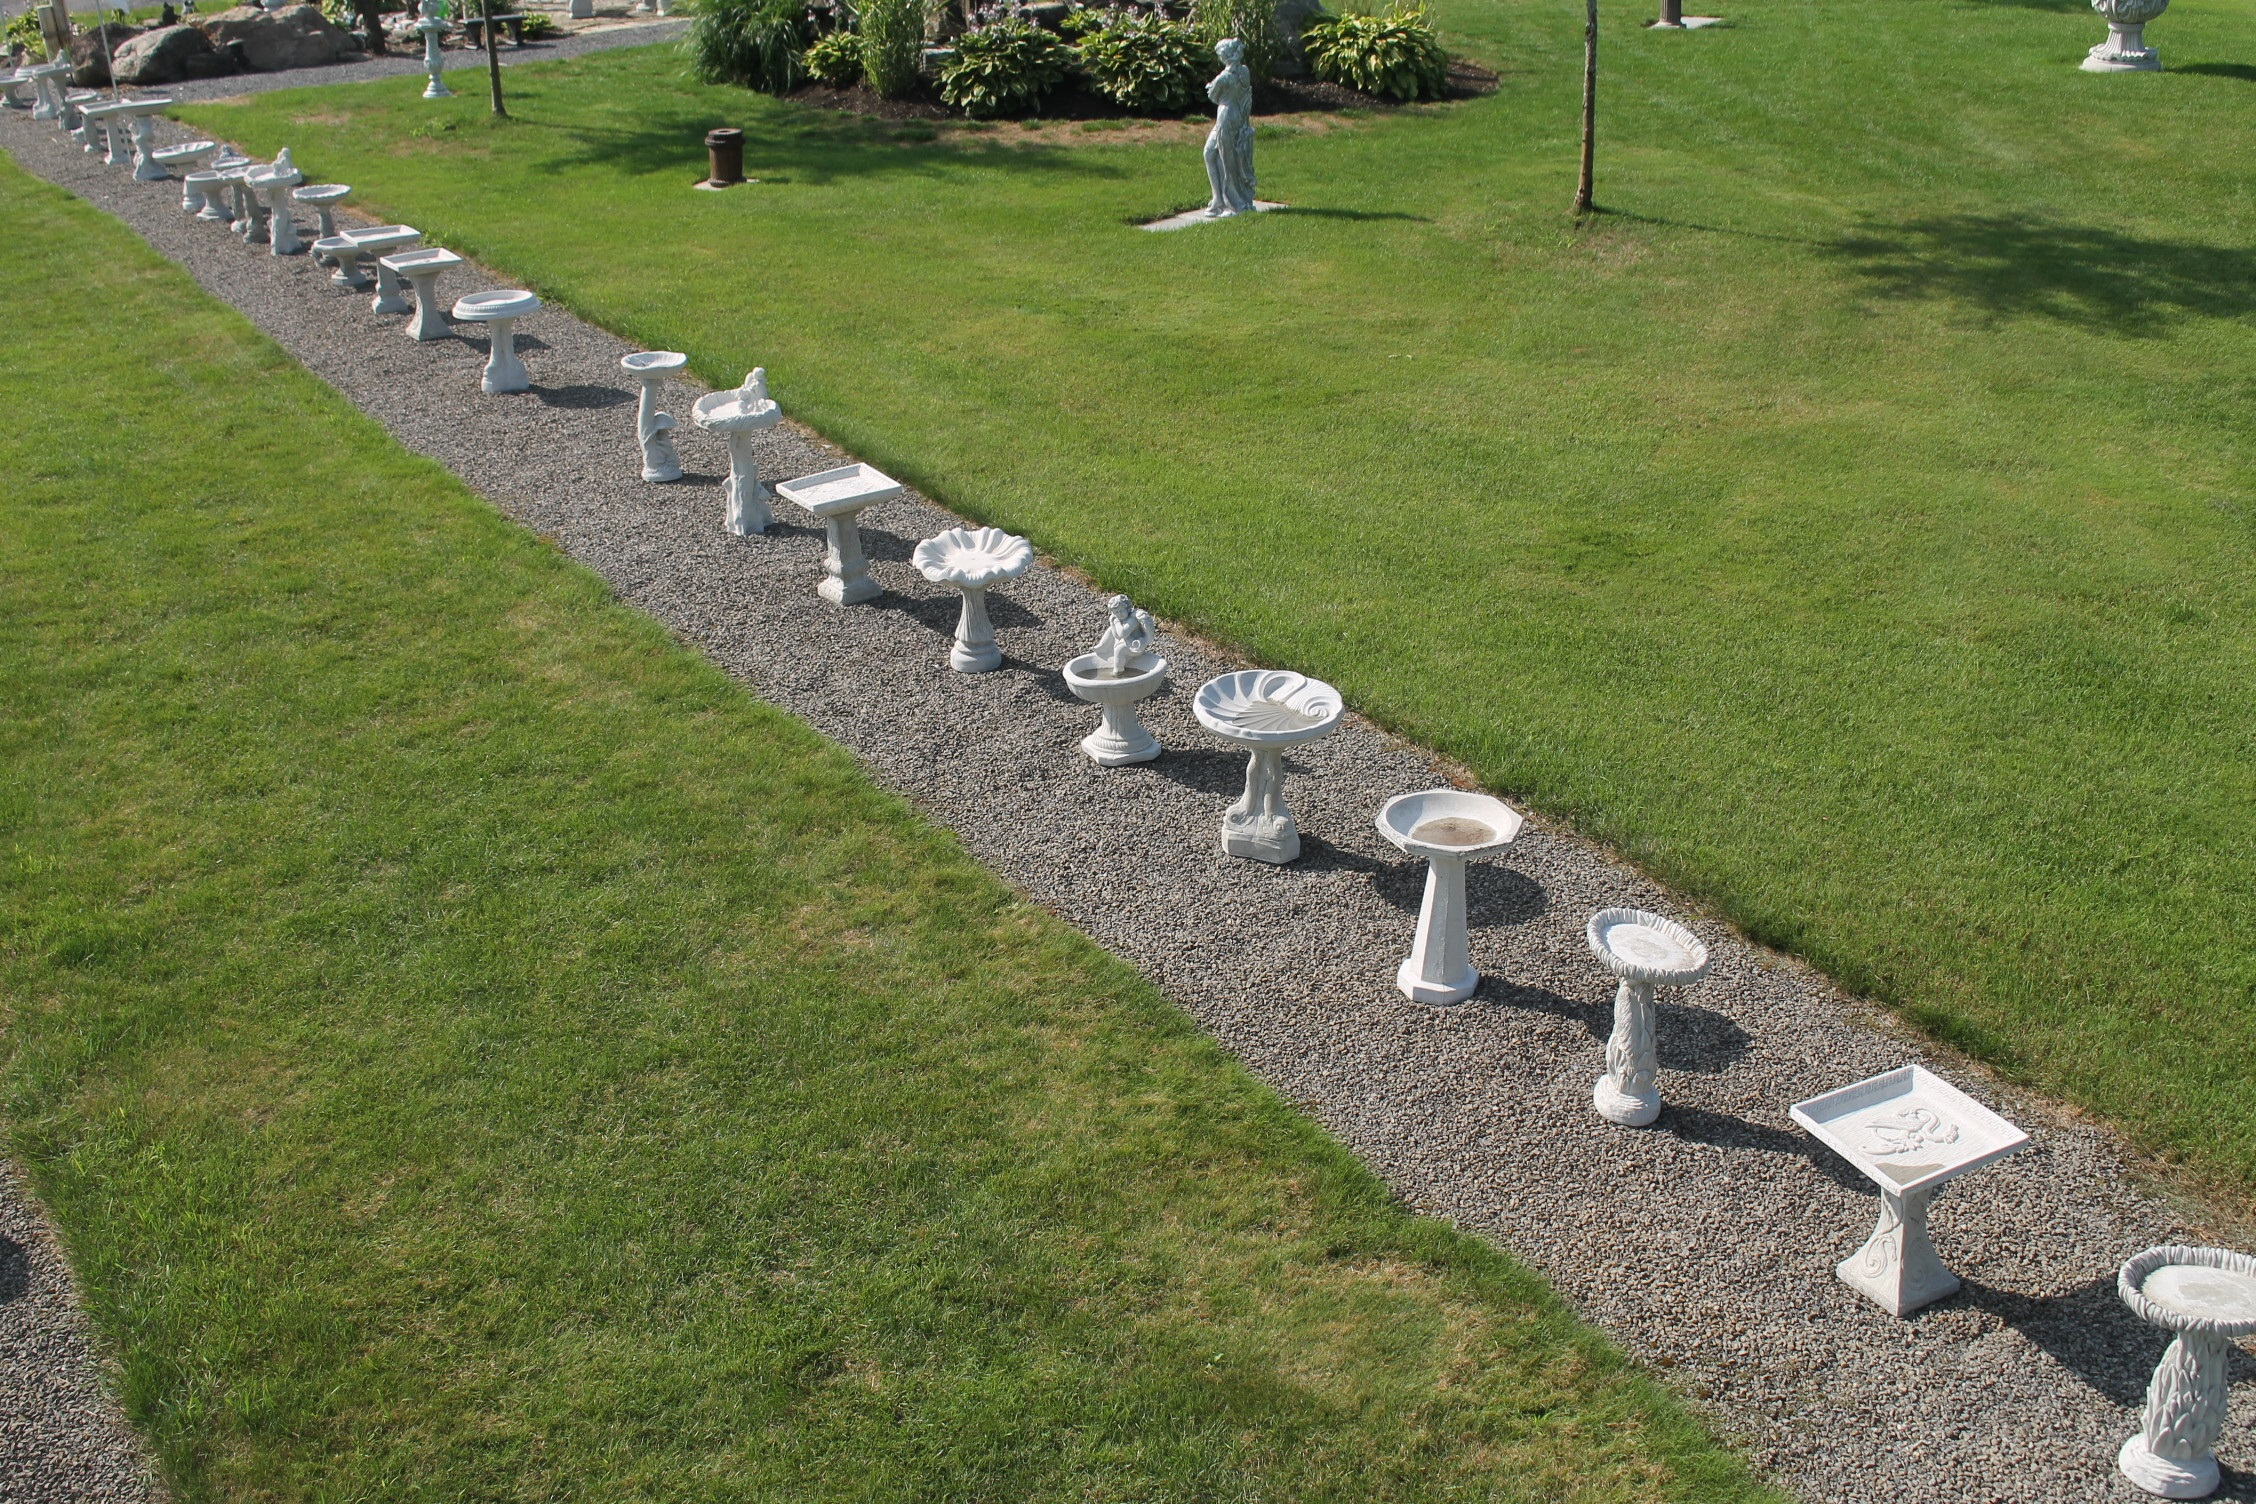 An overview picture of the small bird bath row at KB Backyard Depot